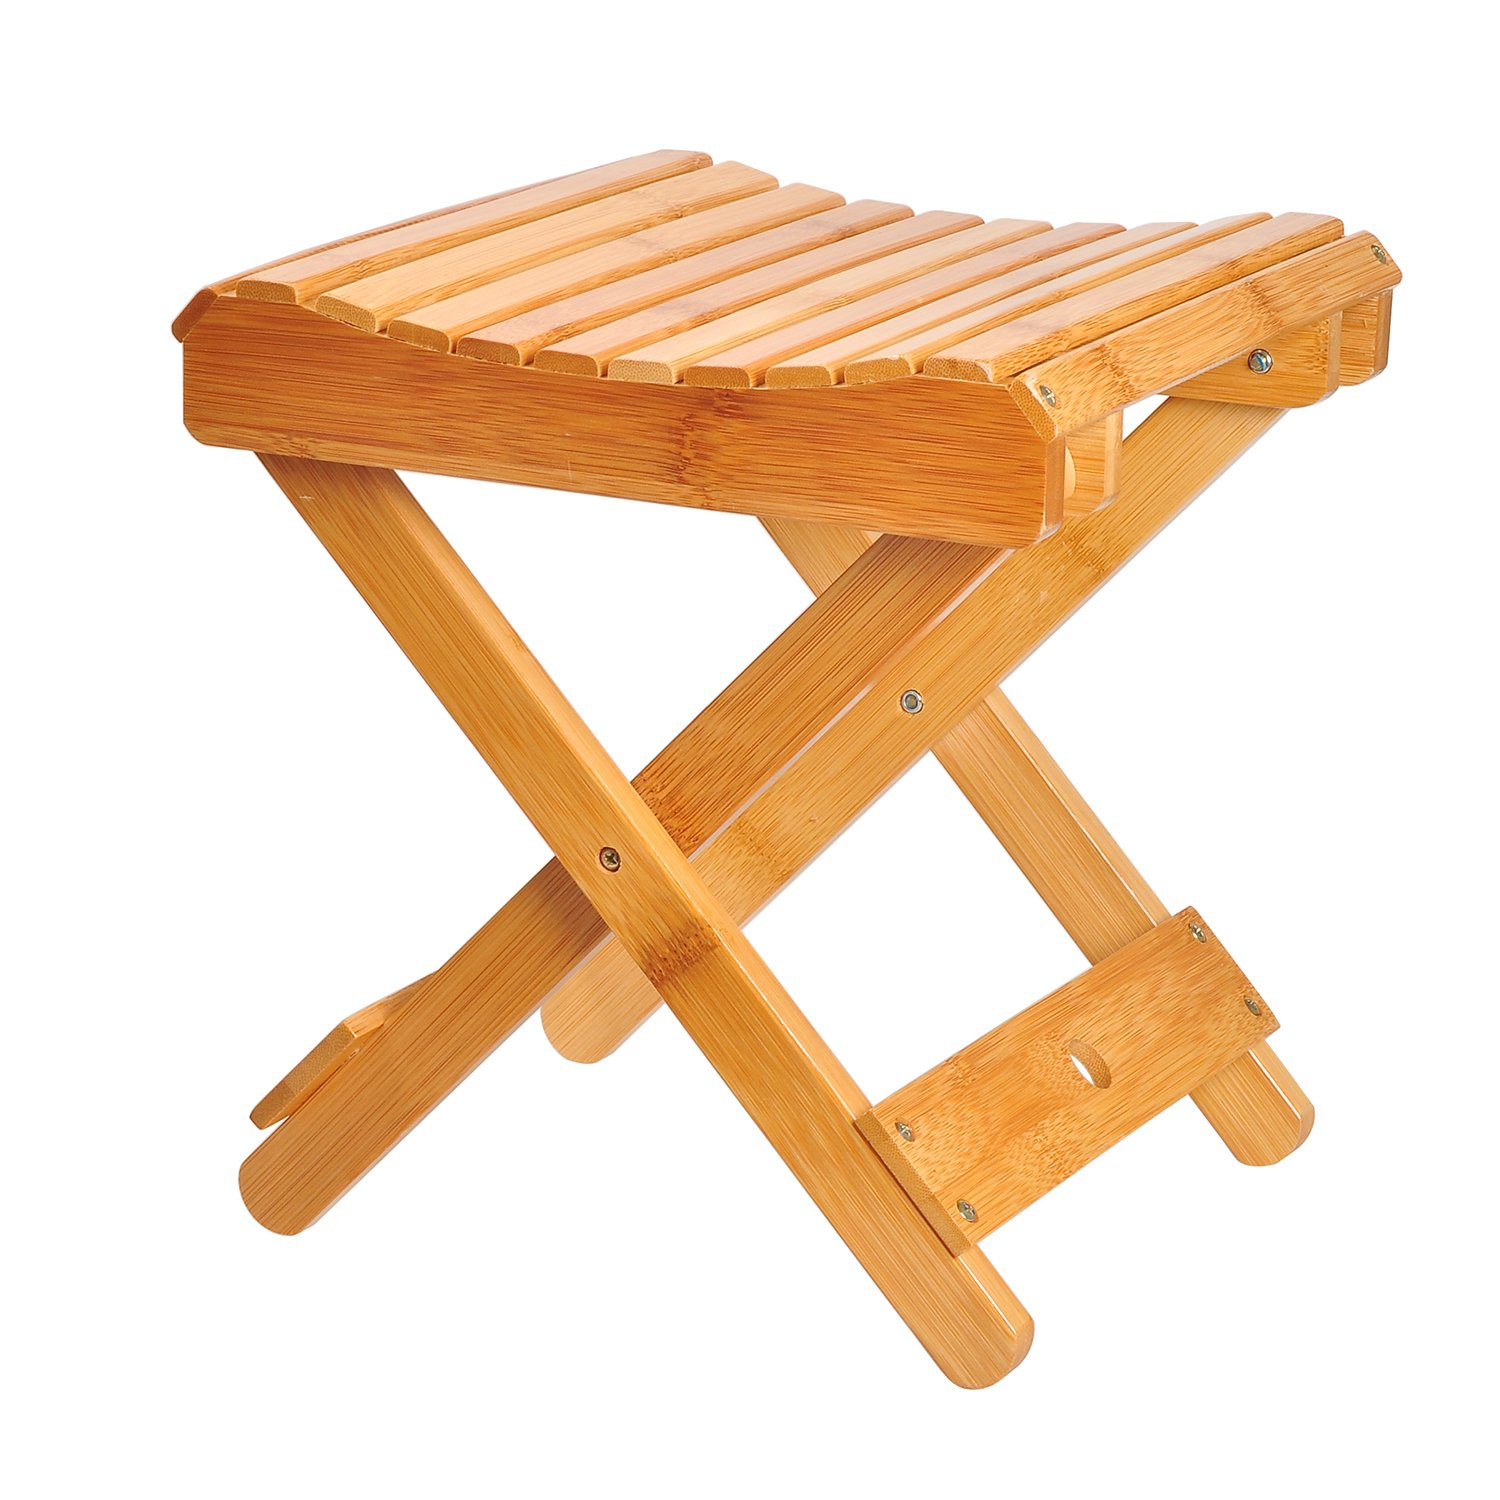 ECROCY Bamboo Folding Stool for Shaving & Shower Foot Rest - Fully Assembled - 12'' Height